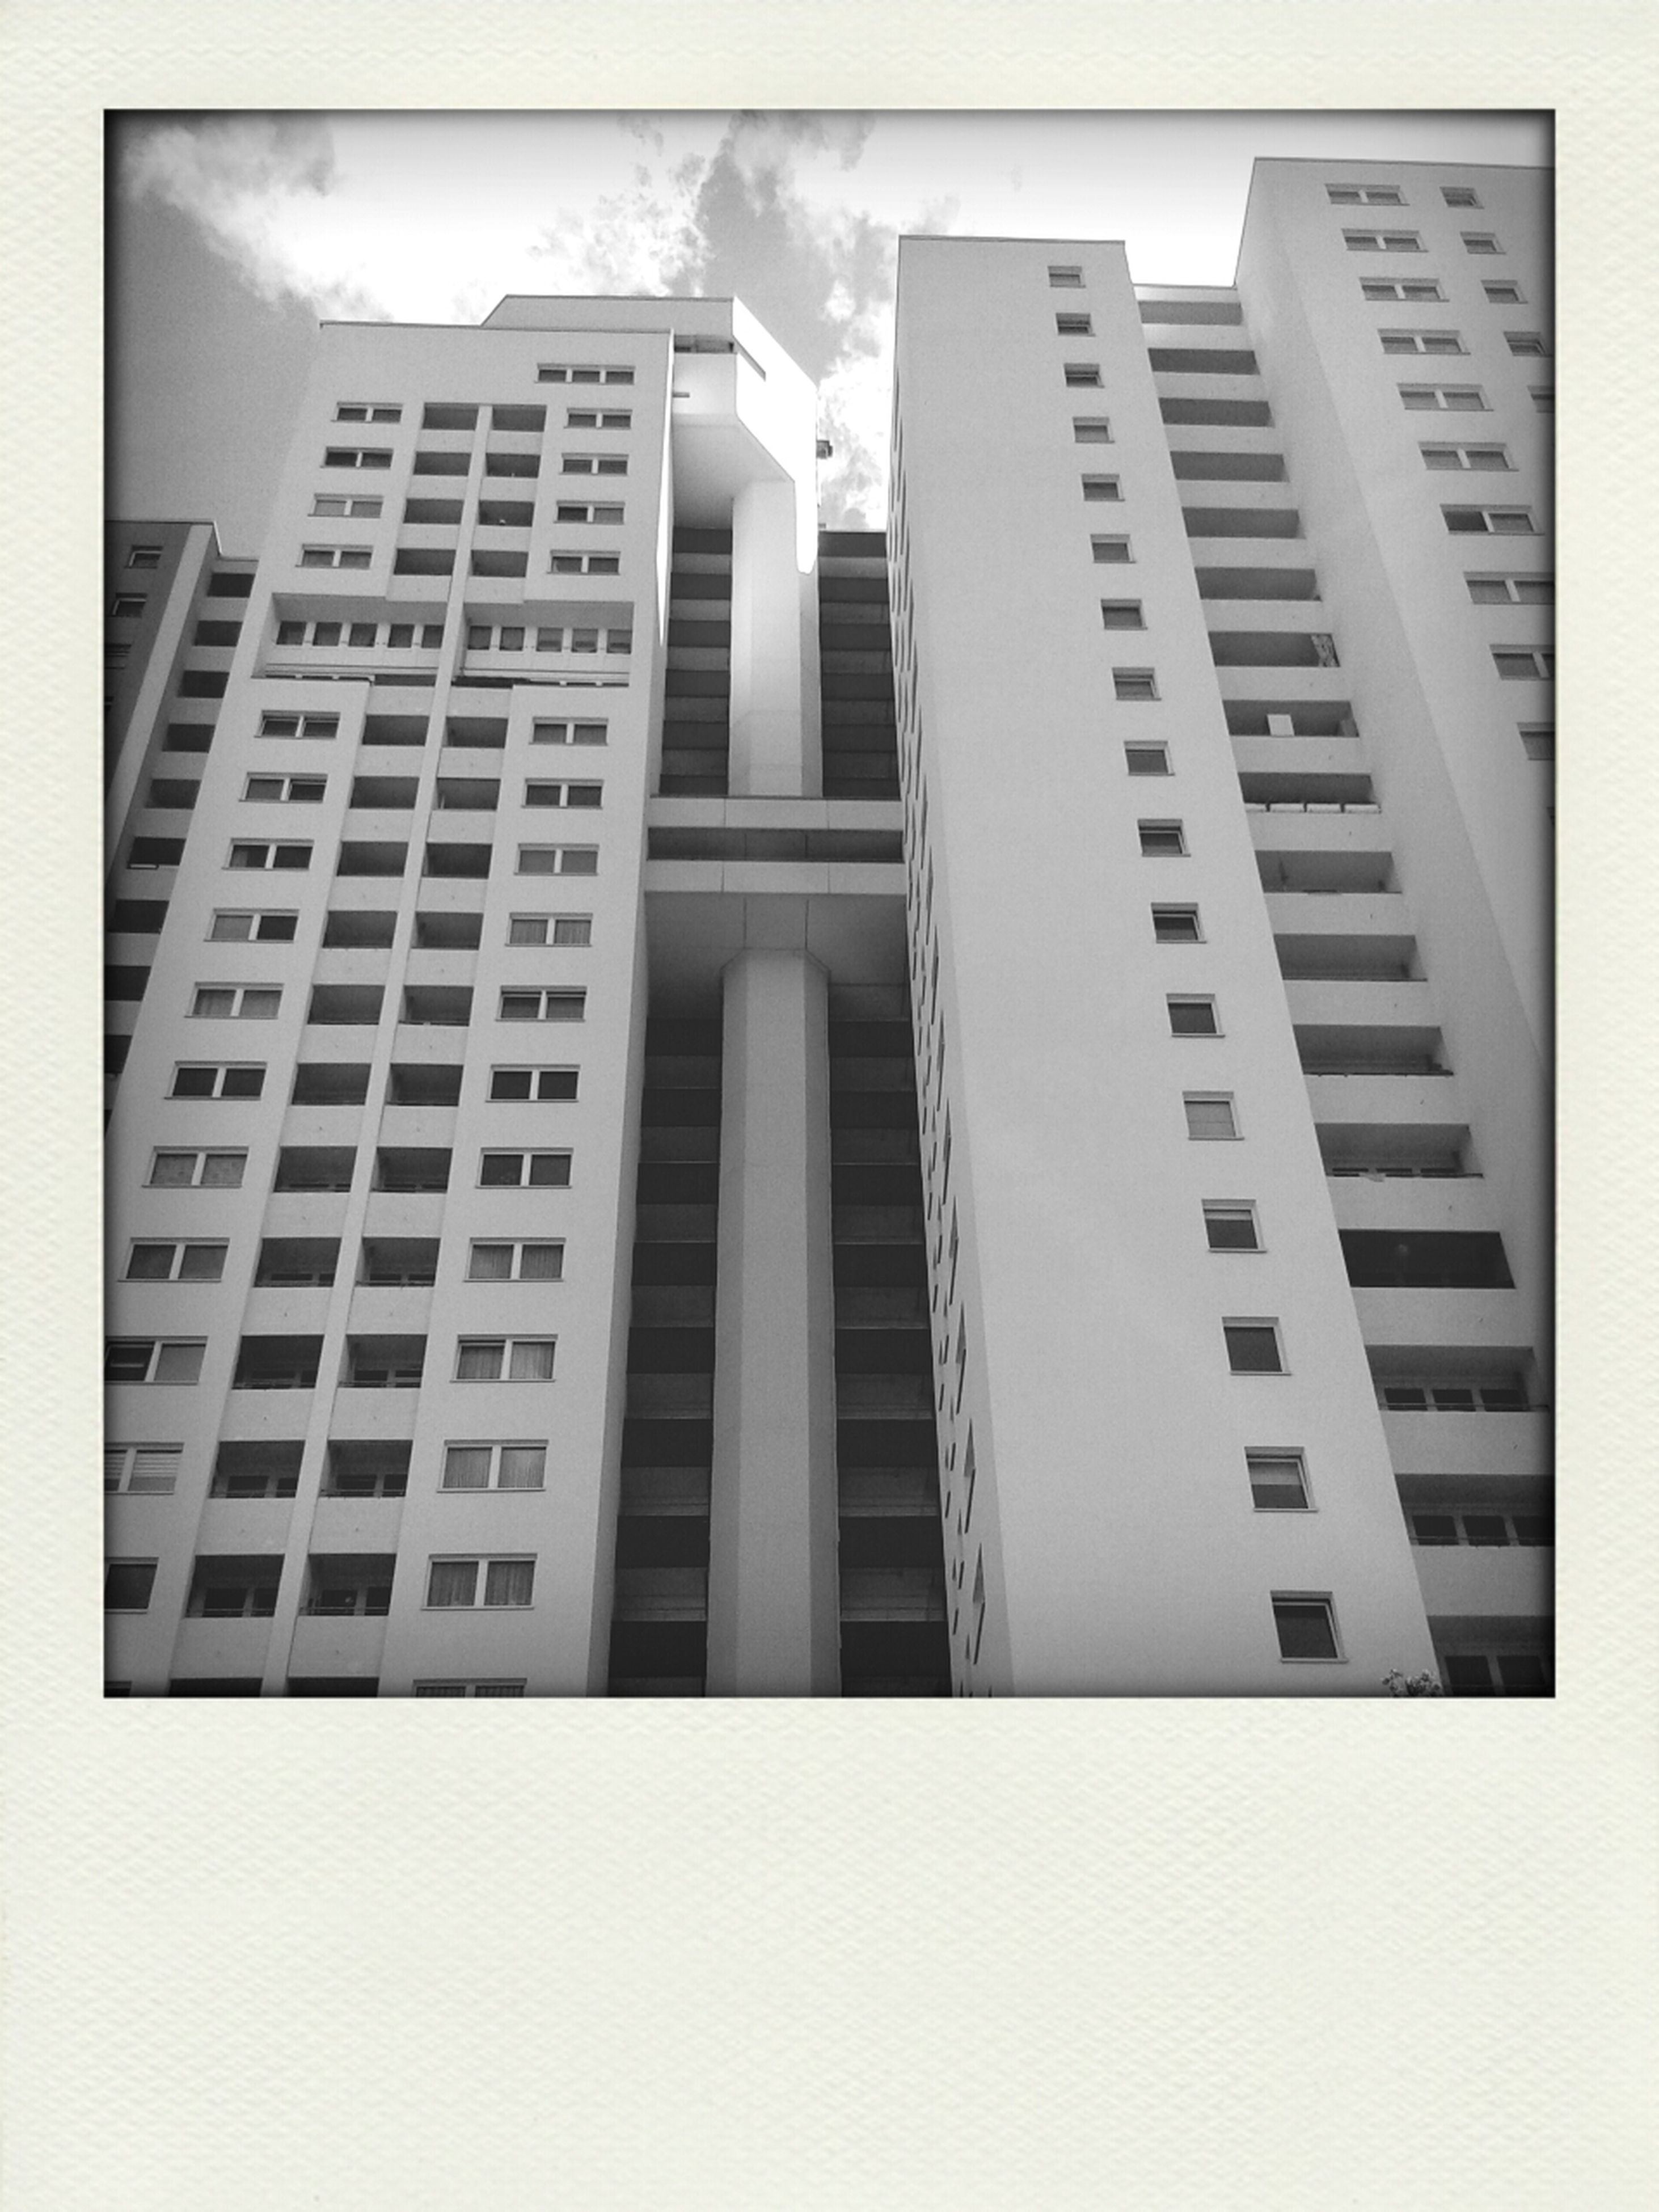 architecture, building exterior, transfer print, built structure, low angle view, auto post production filter, building, window, city, office building, modern, glass - material, residential building, day, sky, residential structure, outdoors, tall - high, no people, facade